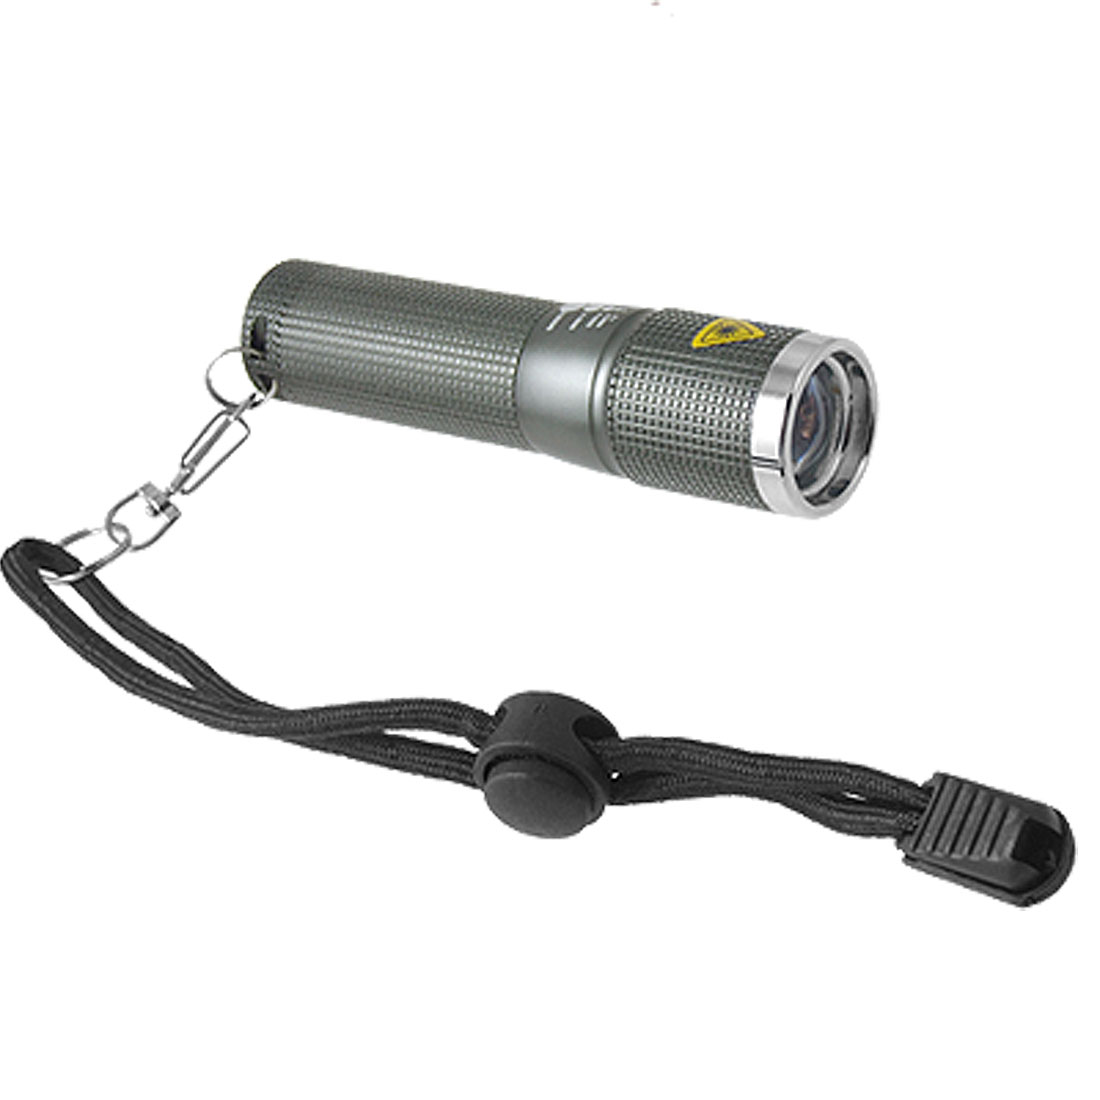 Adjustable Zoom Focus Portable LED Flashlight Aluminium Torch Gray